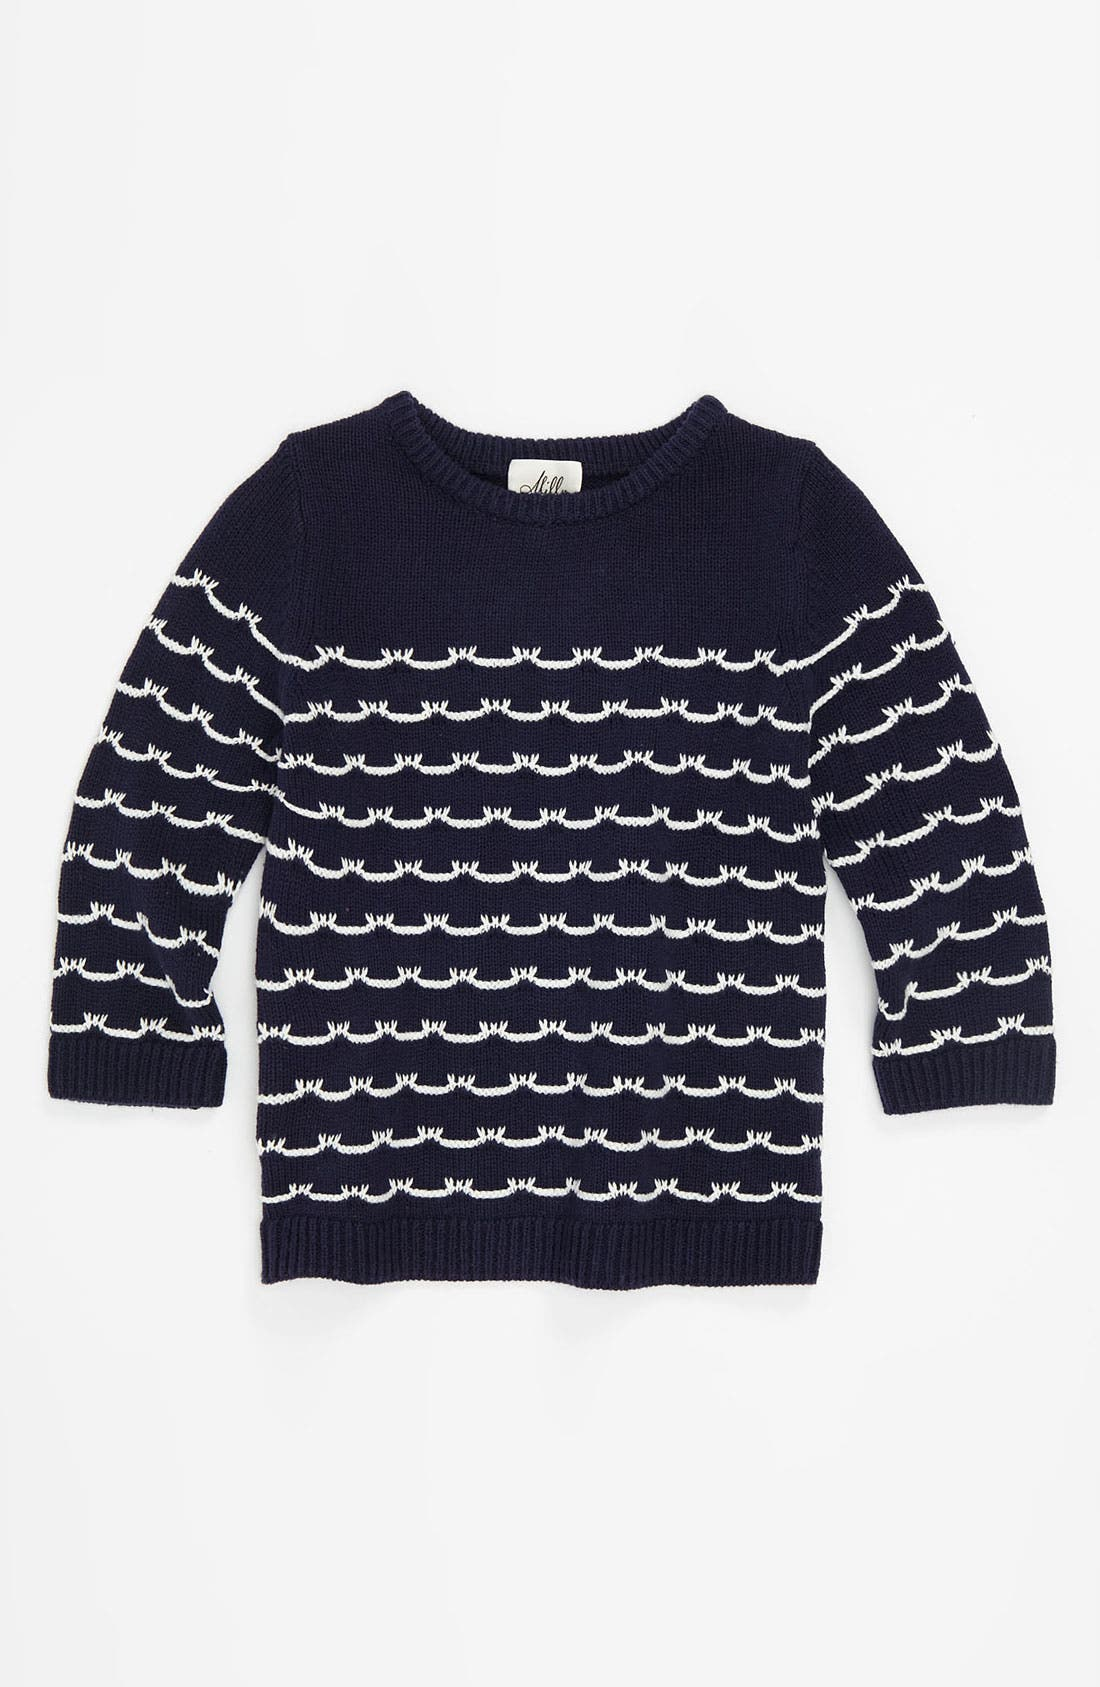 Alternate Image 1 Selected - Milly Minis 'Sailor Stitch' Sweater (Little Girls & Big Girls)